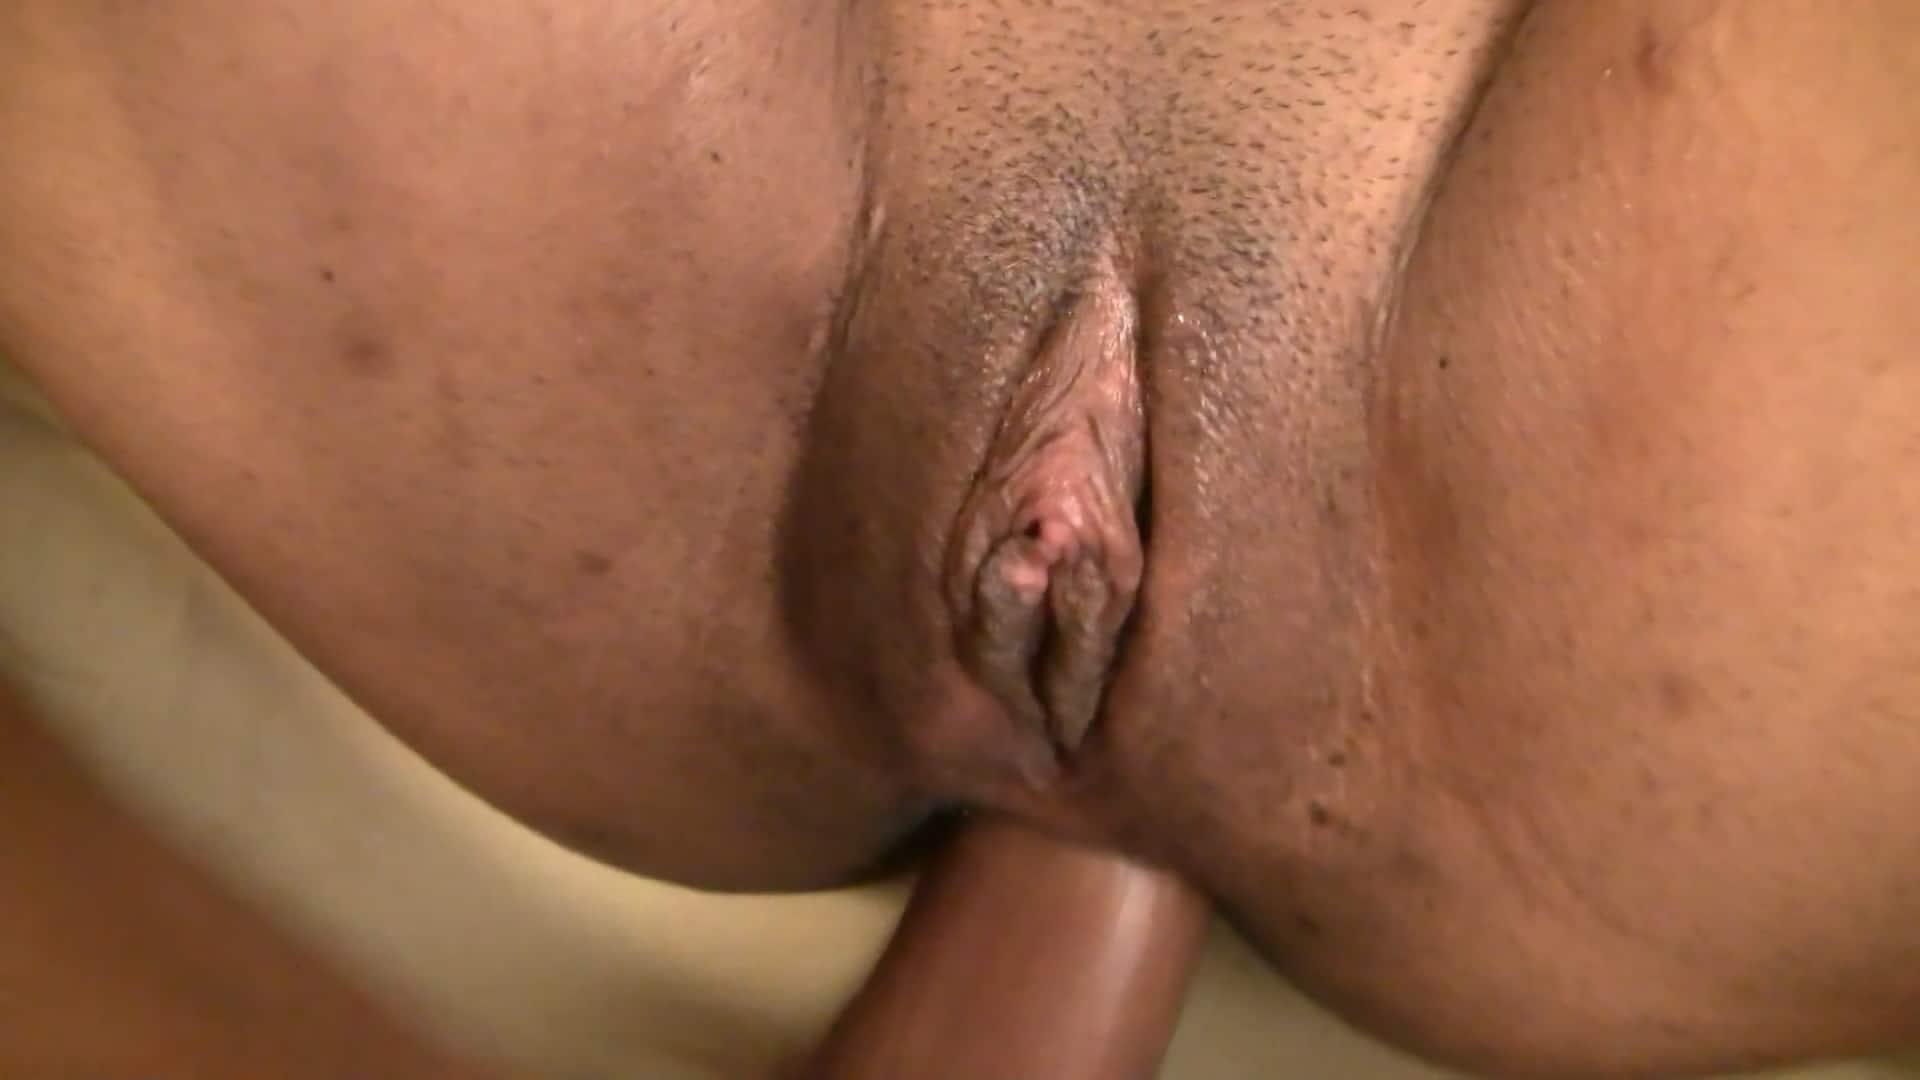 Montana Fishburne pussy cock in her ass